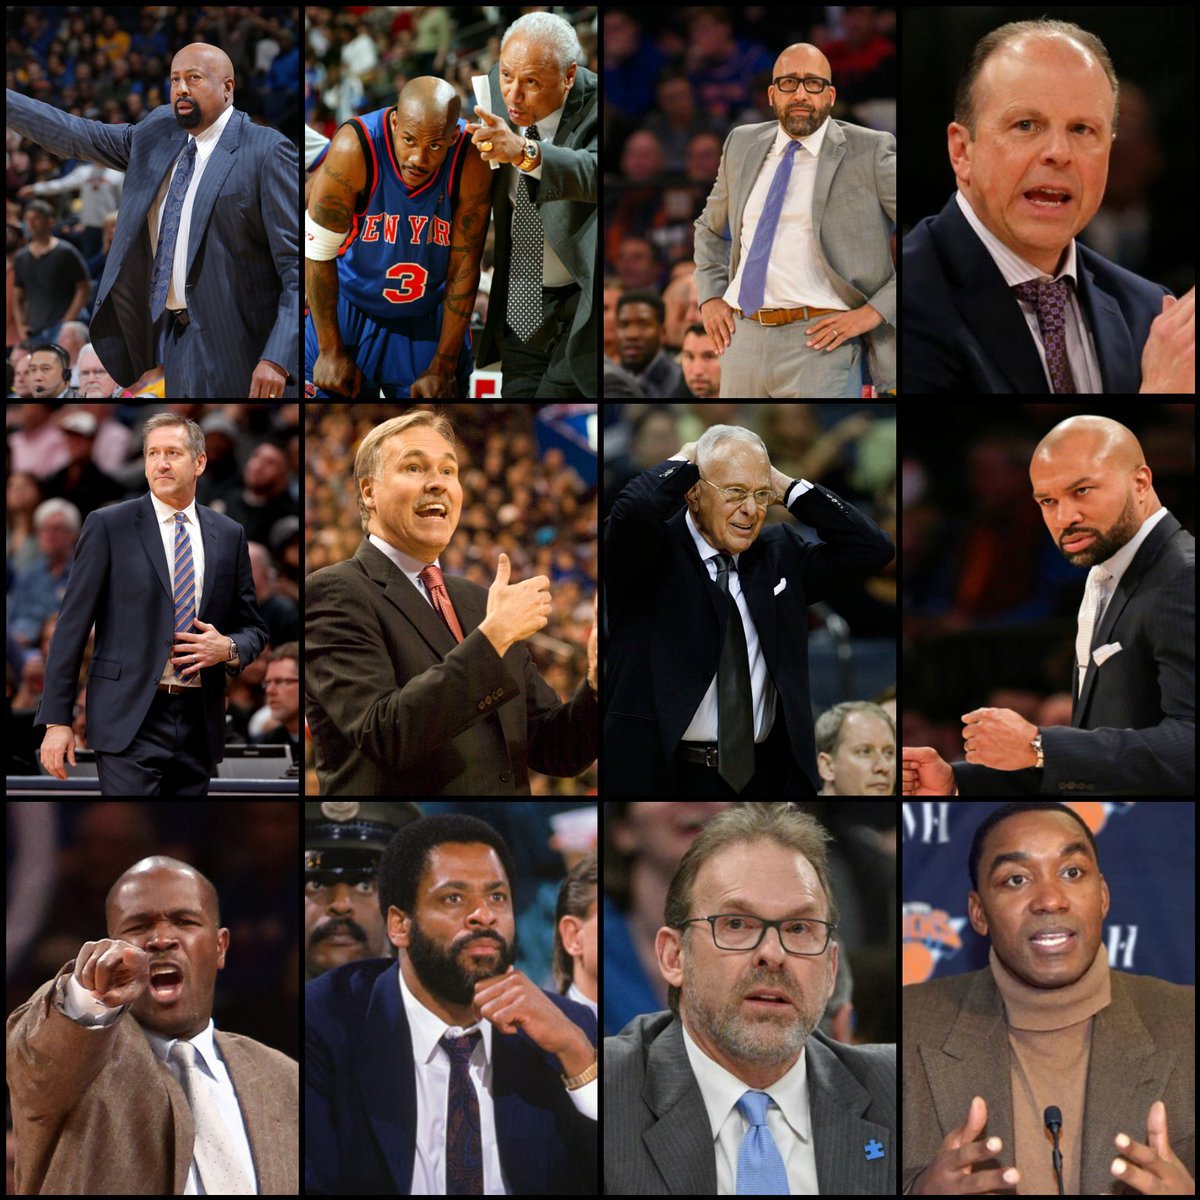 12th coaches since 2001, do #Knicks really believe Tom Thibodeau will make a difference??  #nyknicks #NBATwitter #NBA #NBATogetherLive https://t.co/1ERUkrN9qW